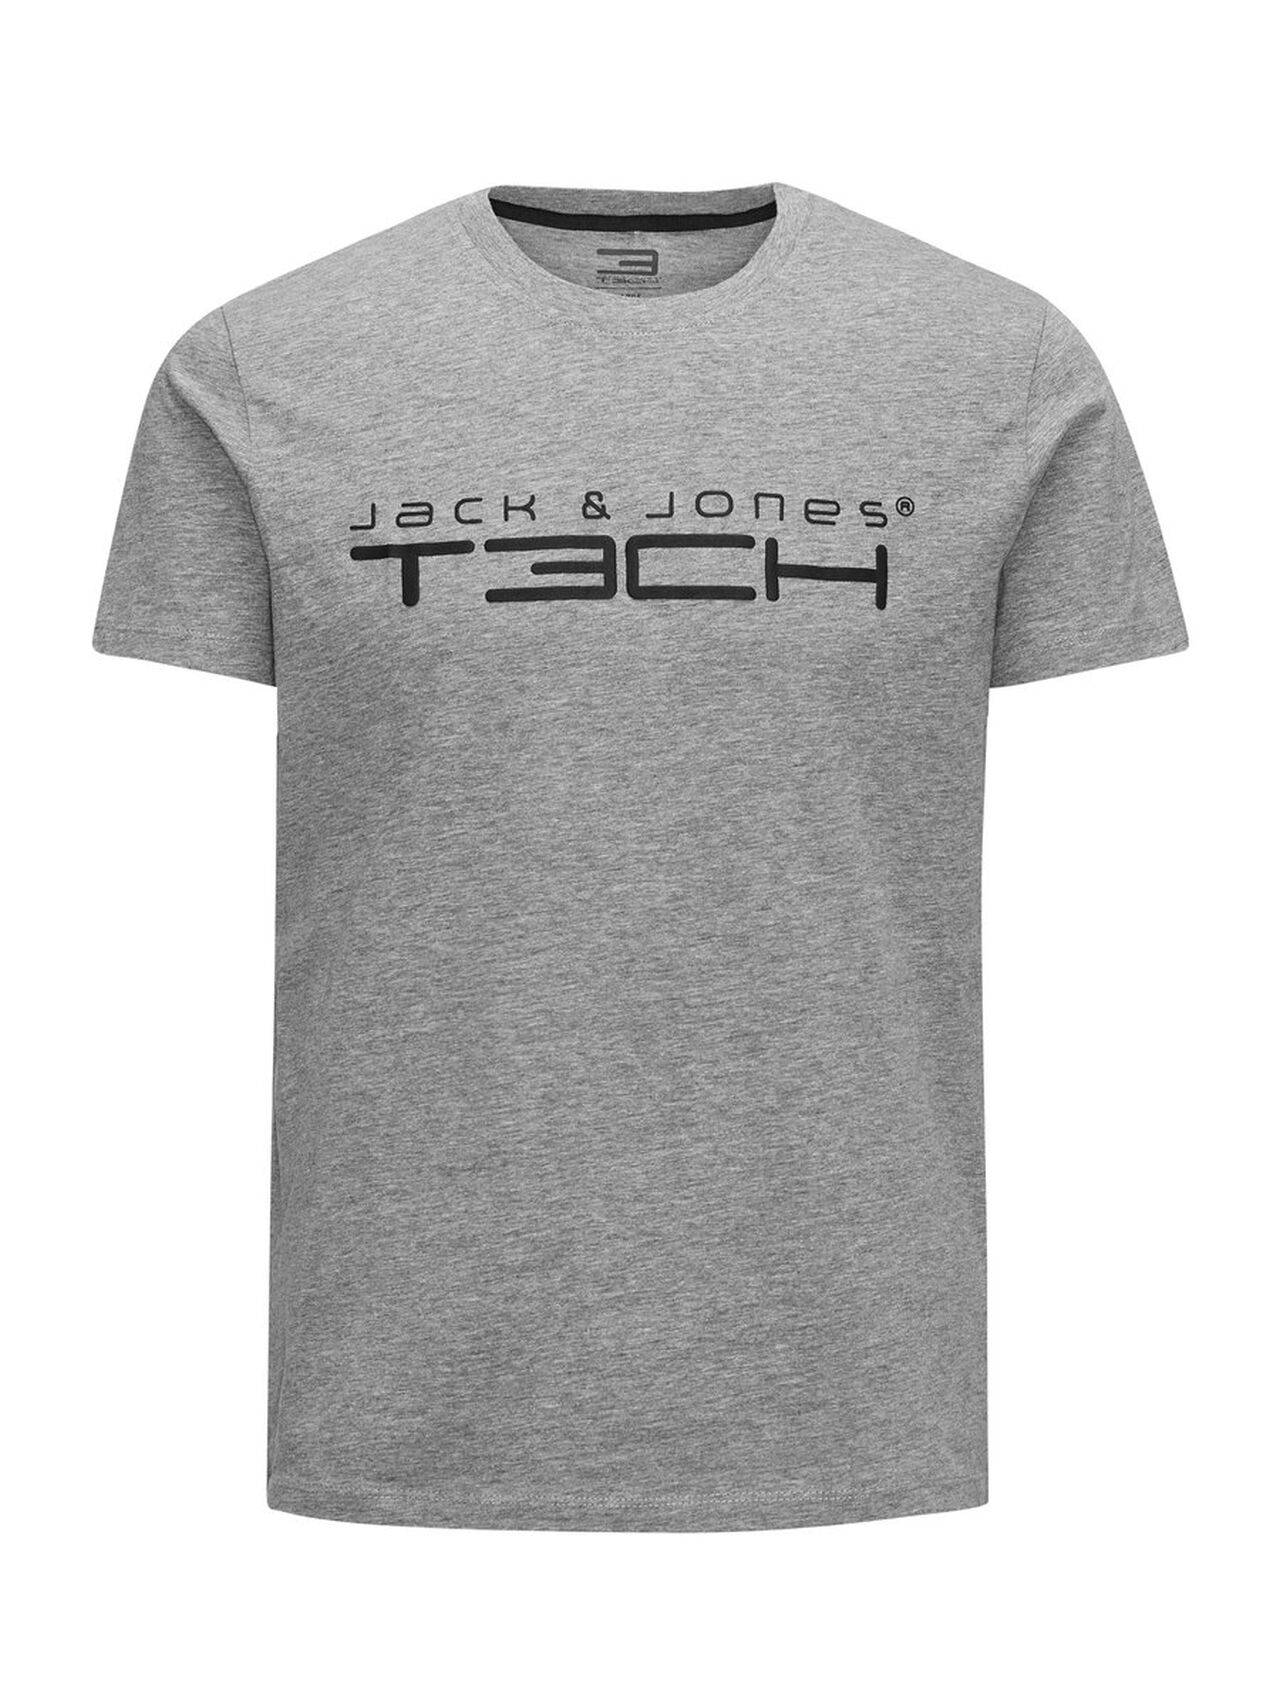 Jack & Jones Printed Sports T-Shirt LightGreyMelange